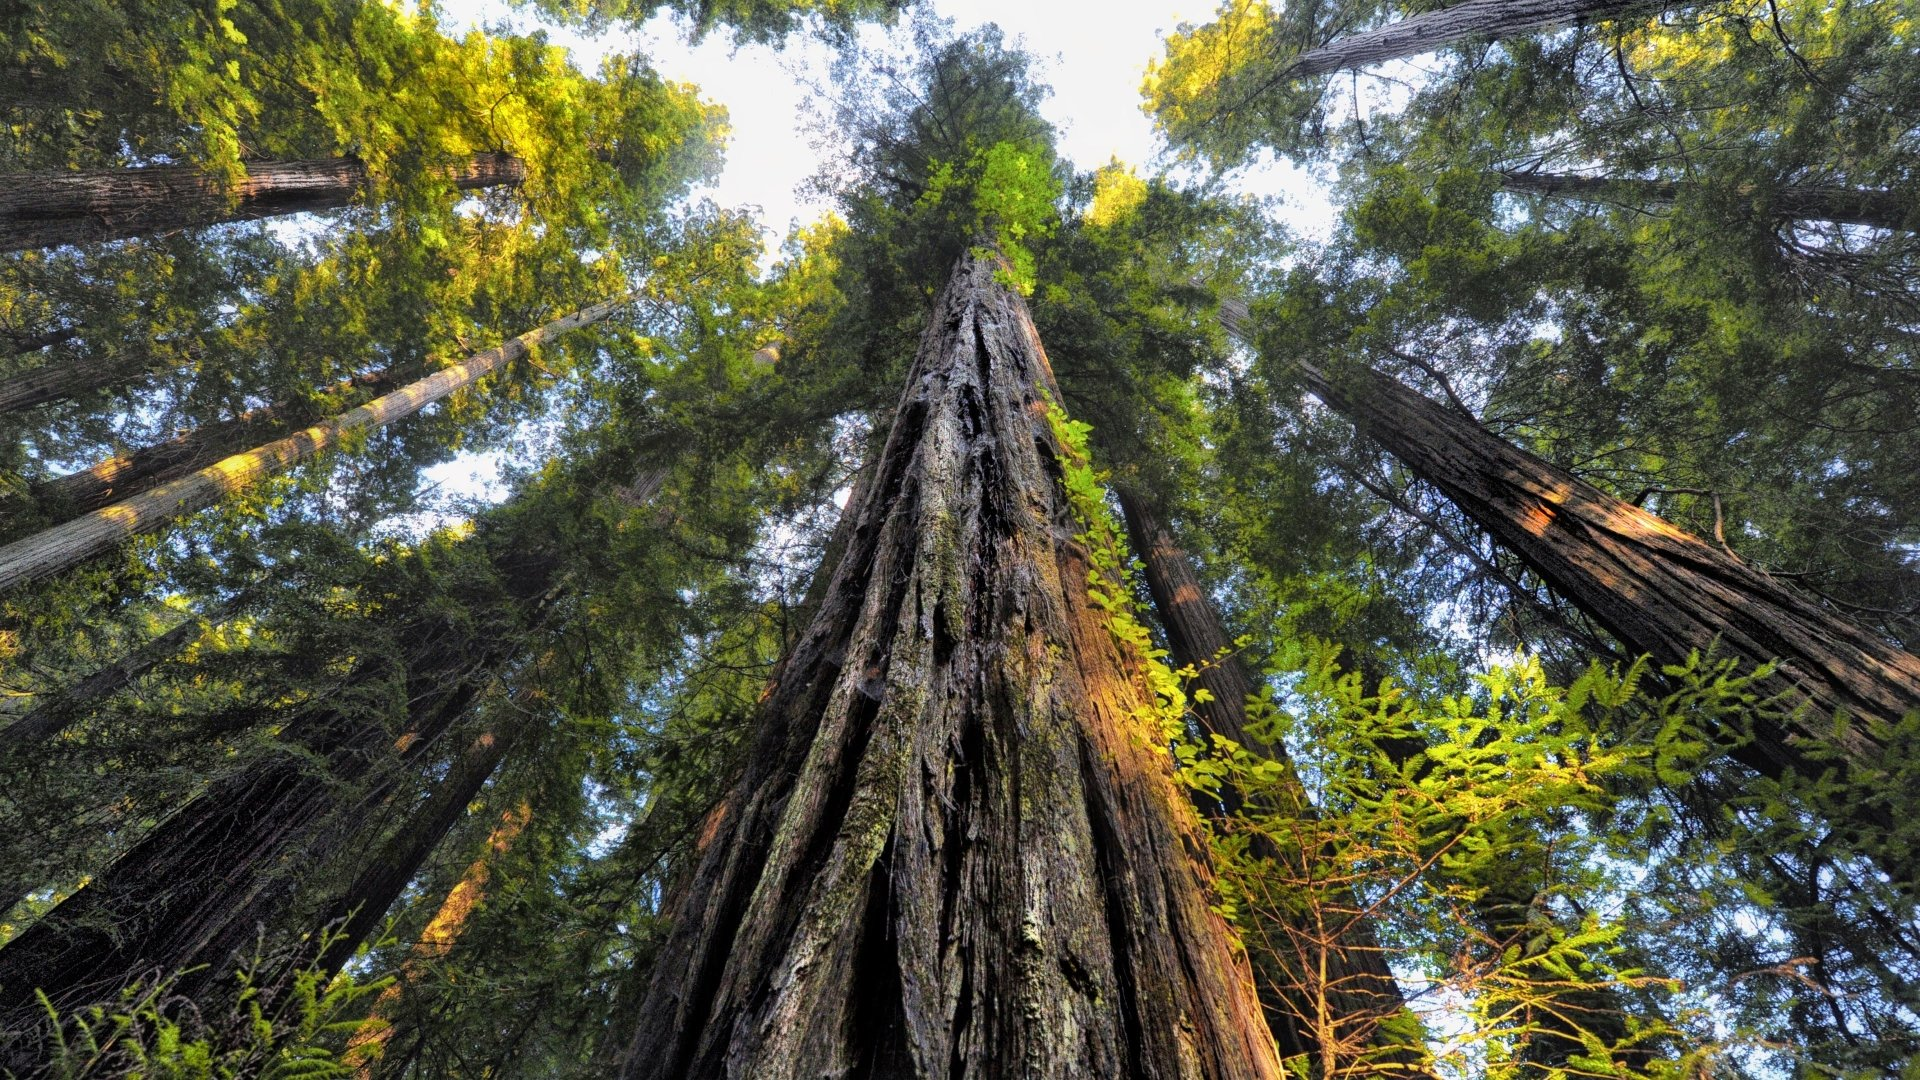 Looking Up At Redwood Trees 4k Ultra Hd Wallpaper